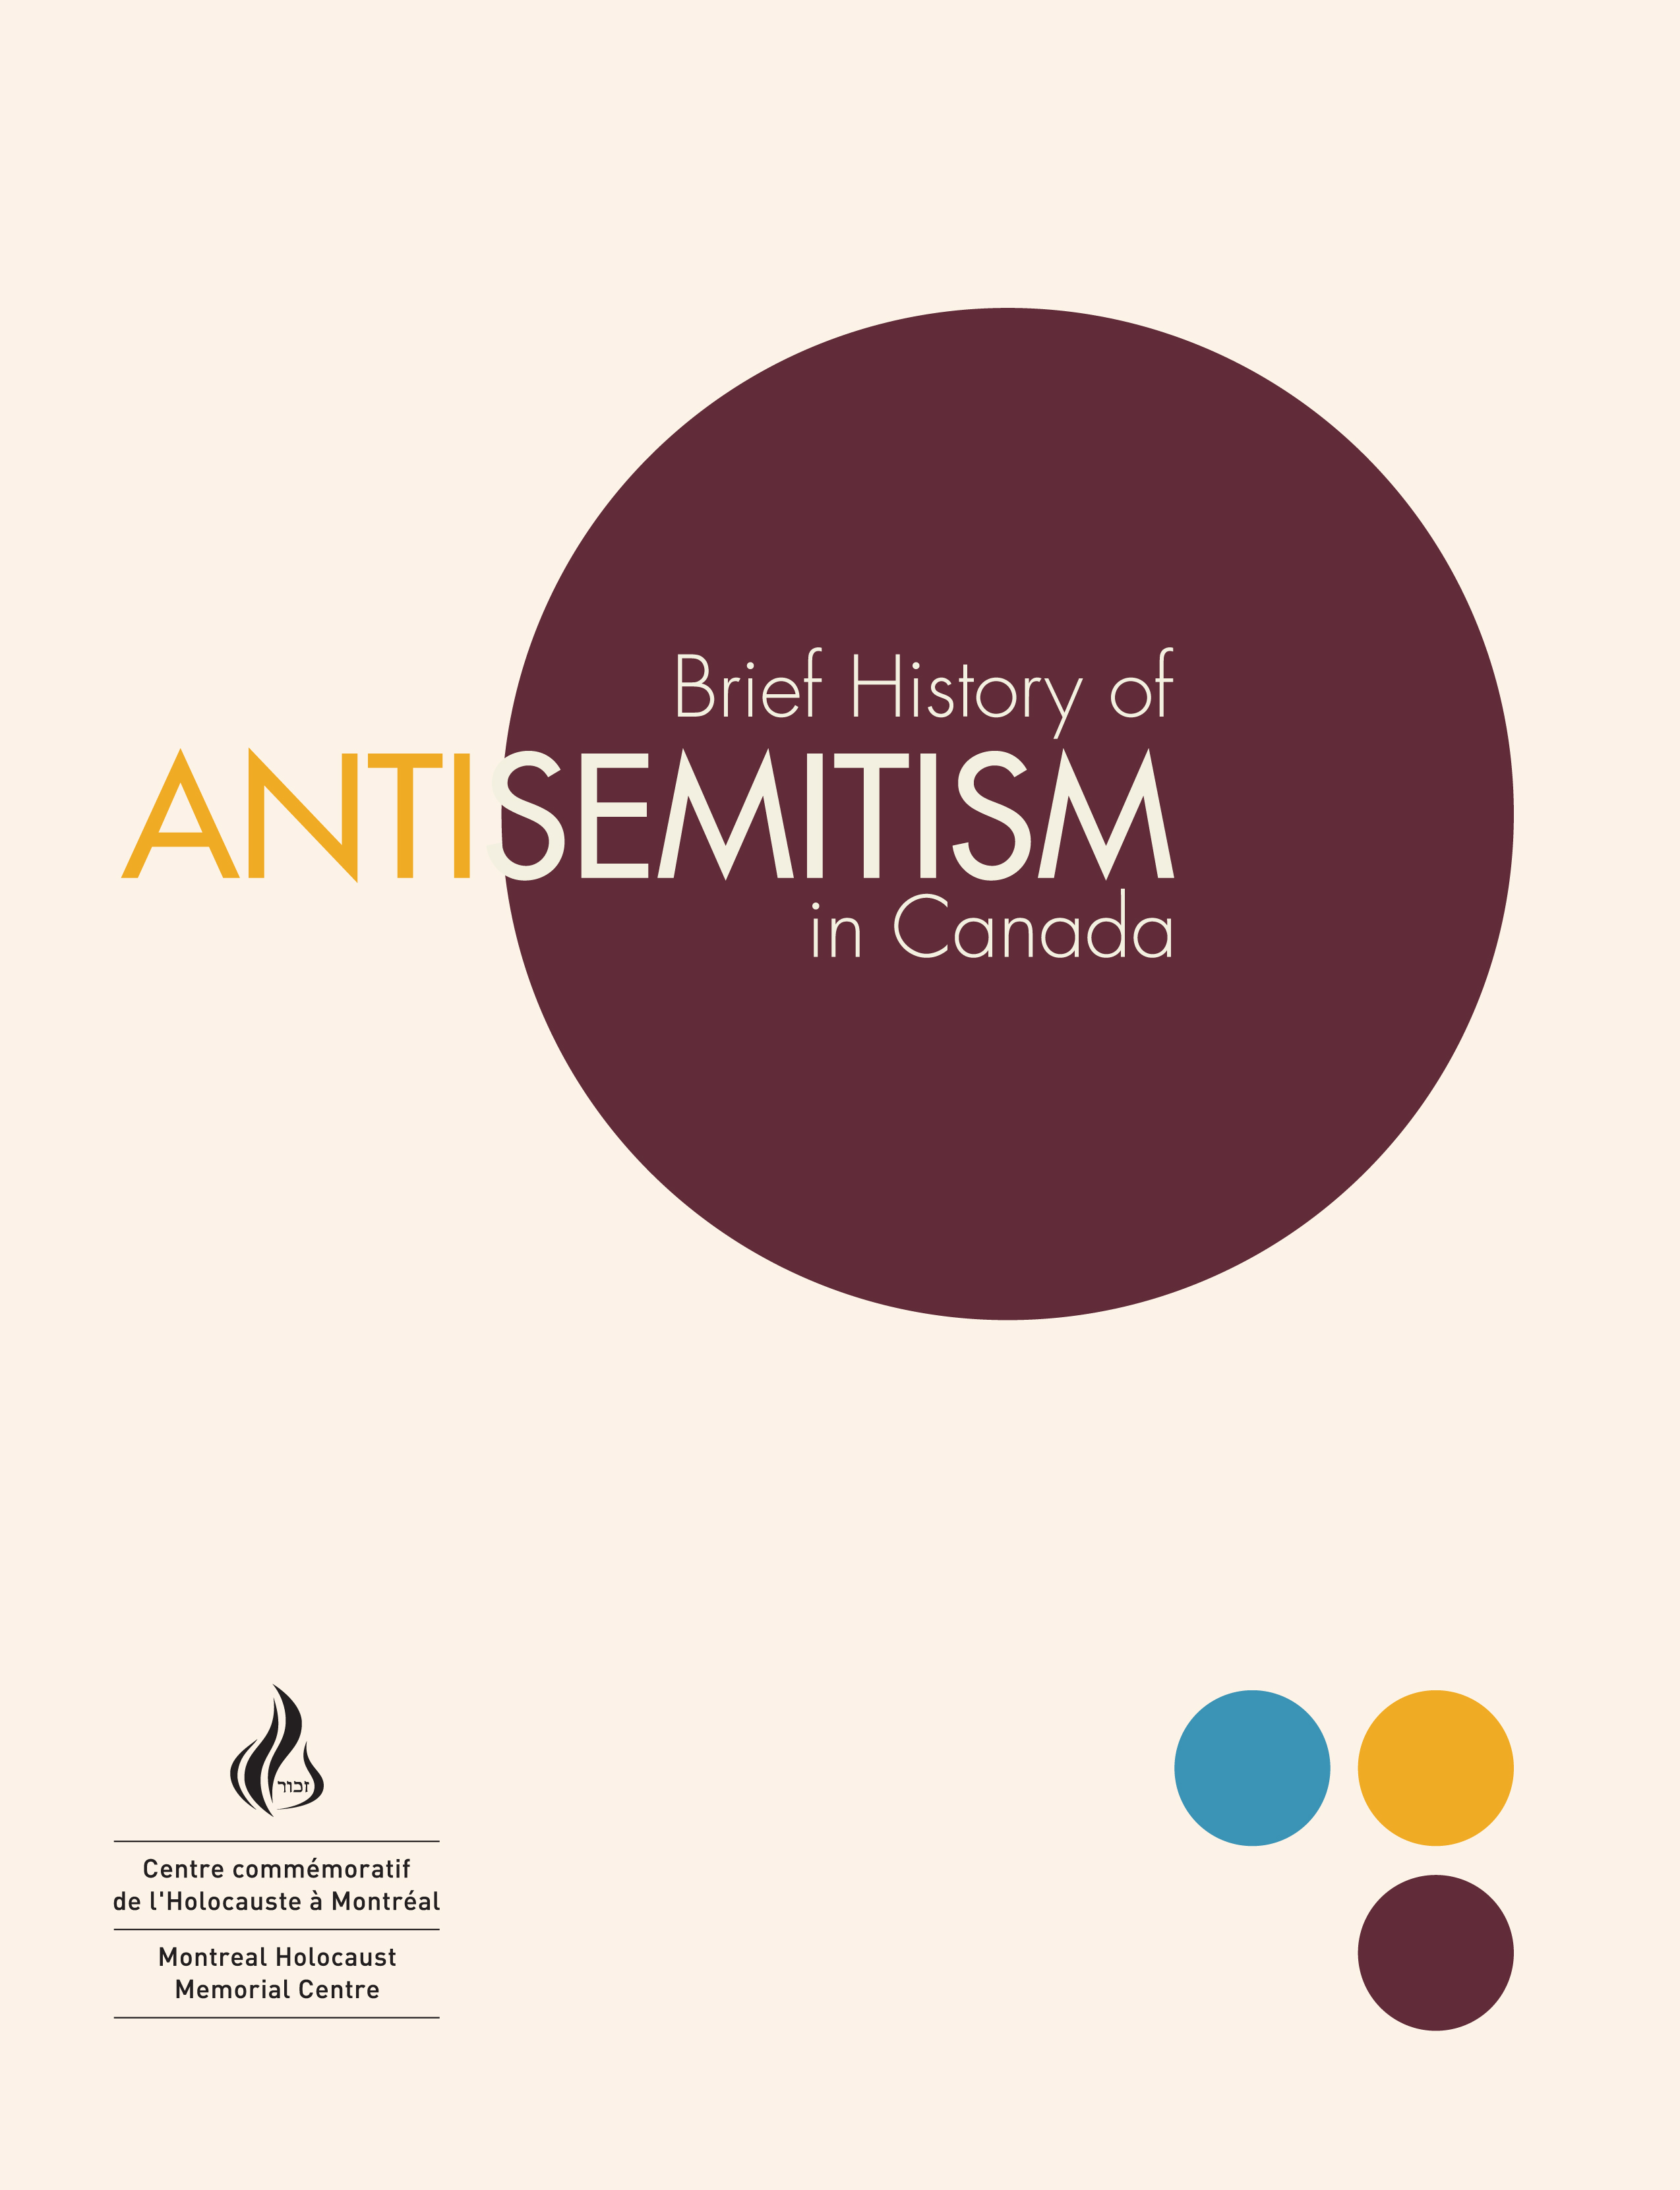 history of anti semitism essay Christian anti-semitism began much later than jesus' life in the gospels of matthew, mark, and luke, which are the historically more reliable ones, jesus views himself as a messenger of god to the jews and as a member of the jewish people.